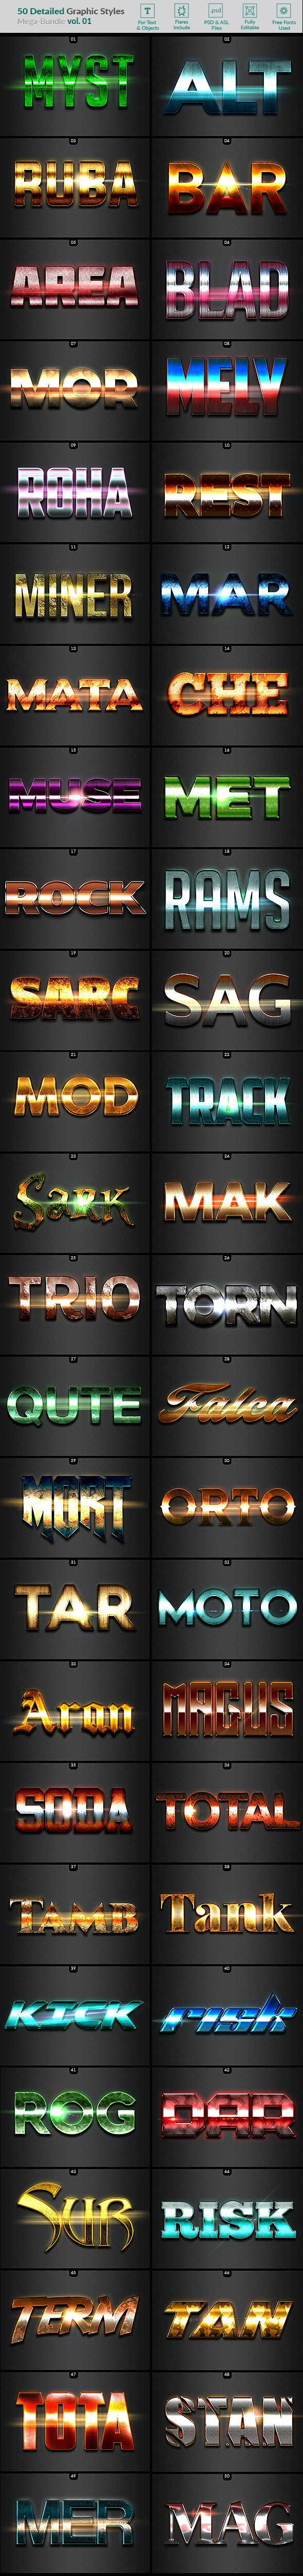 50 Text Effects - Bundle Vol. 01 - Text Effects Styles